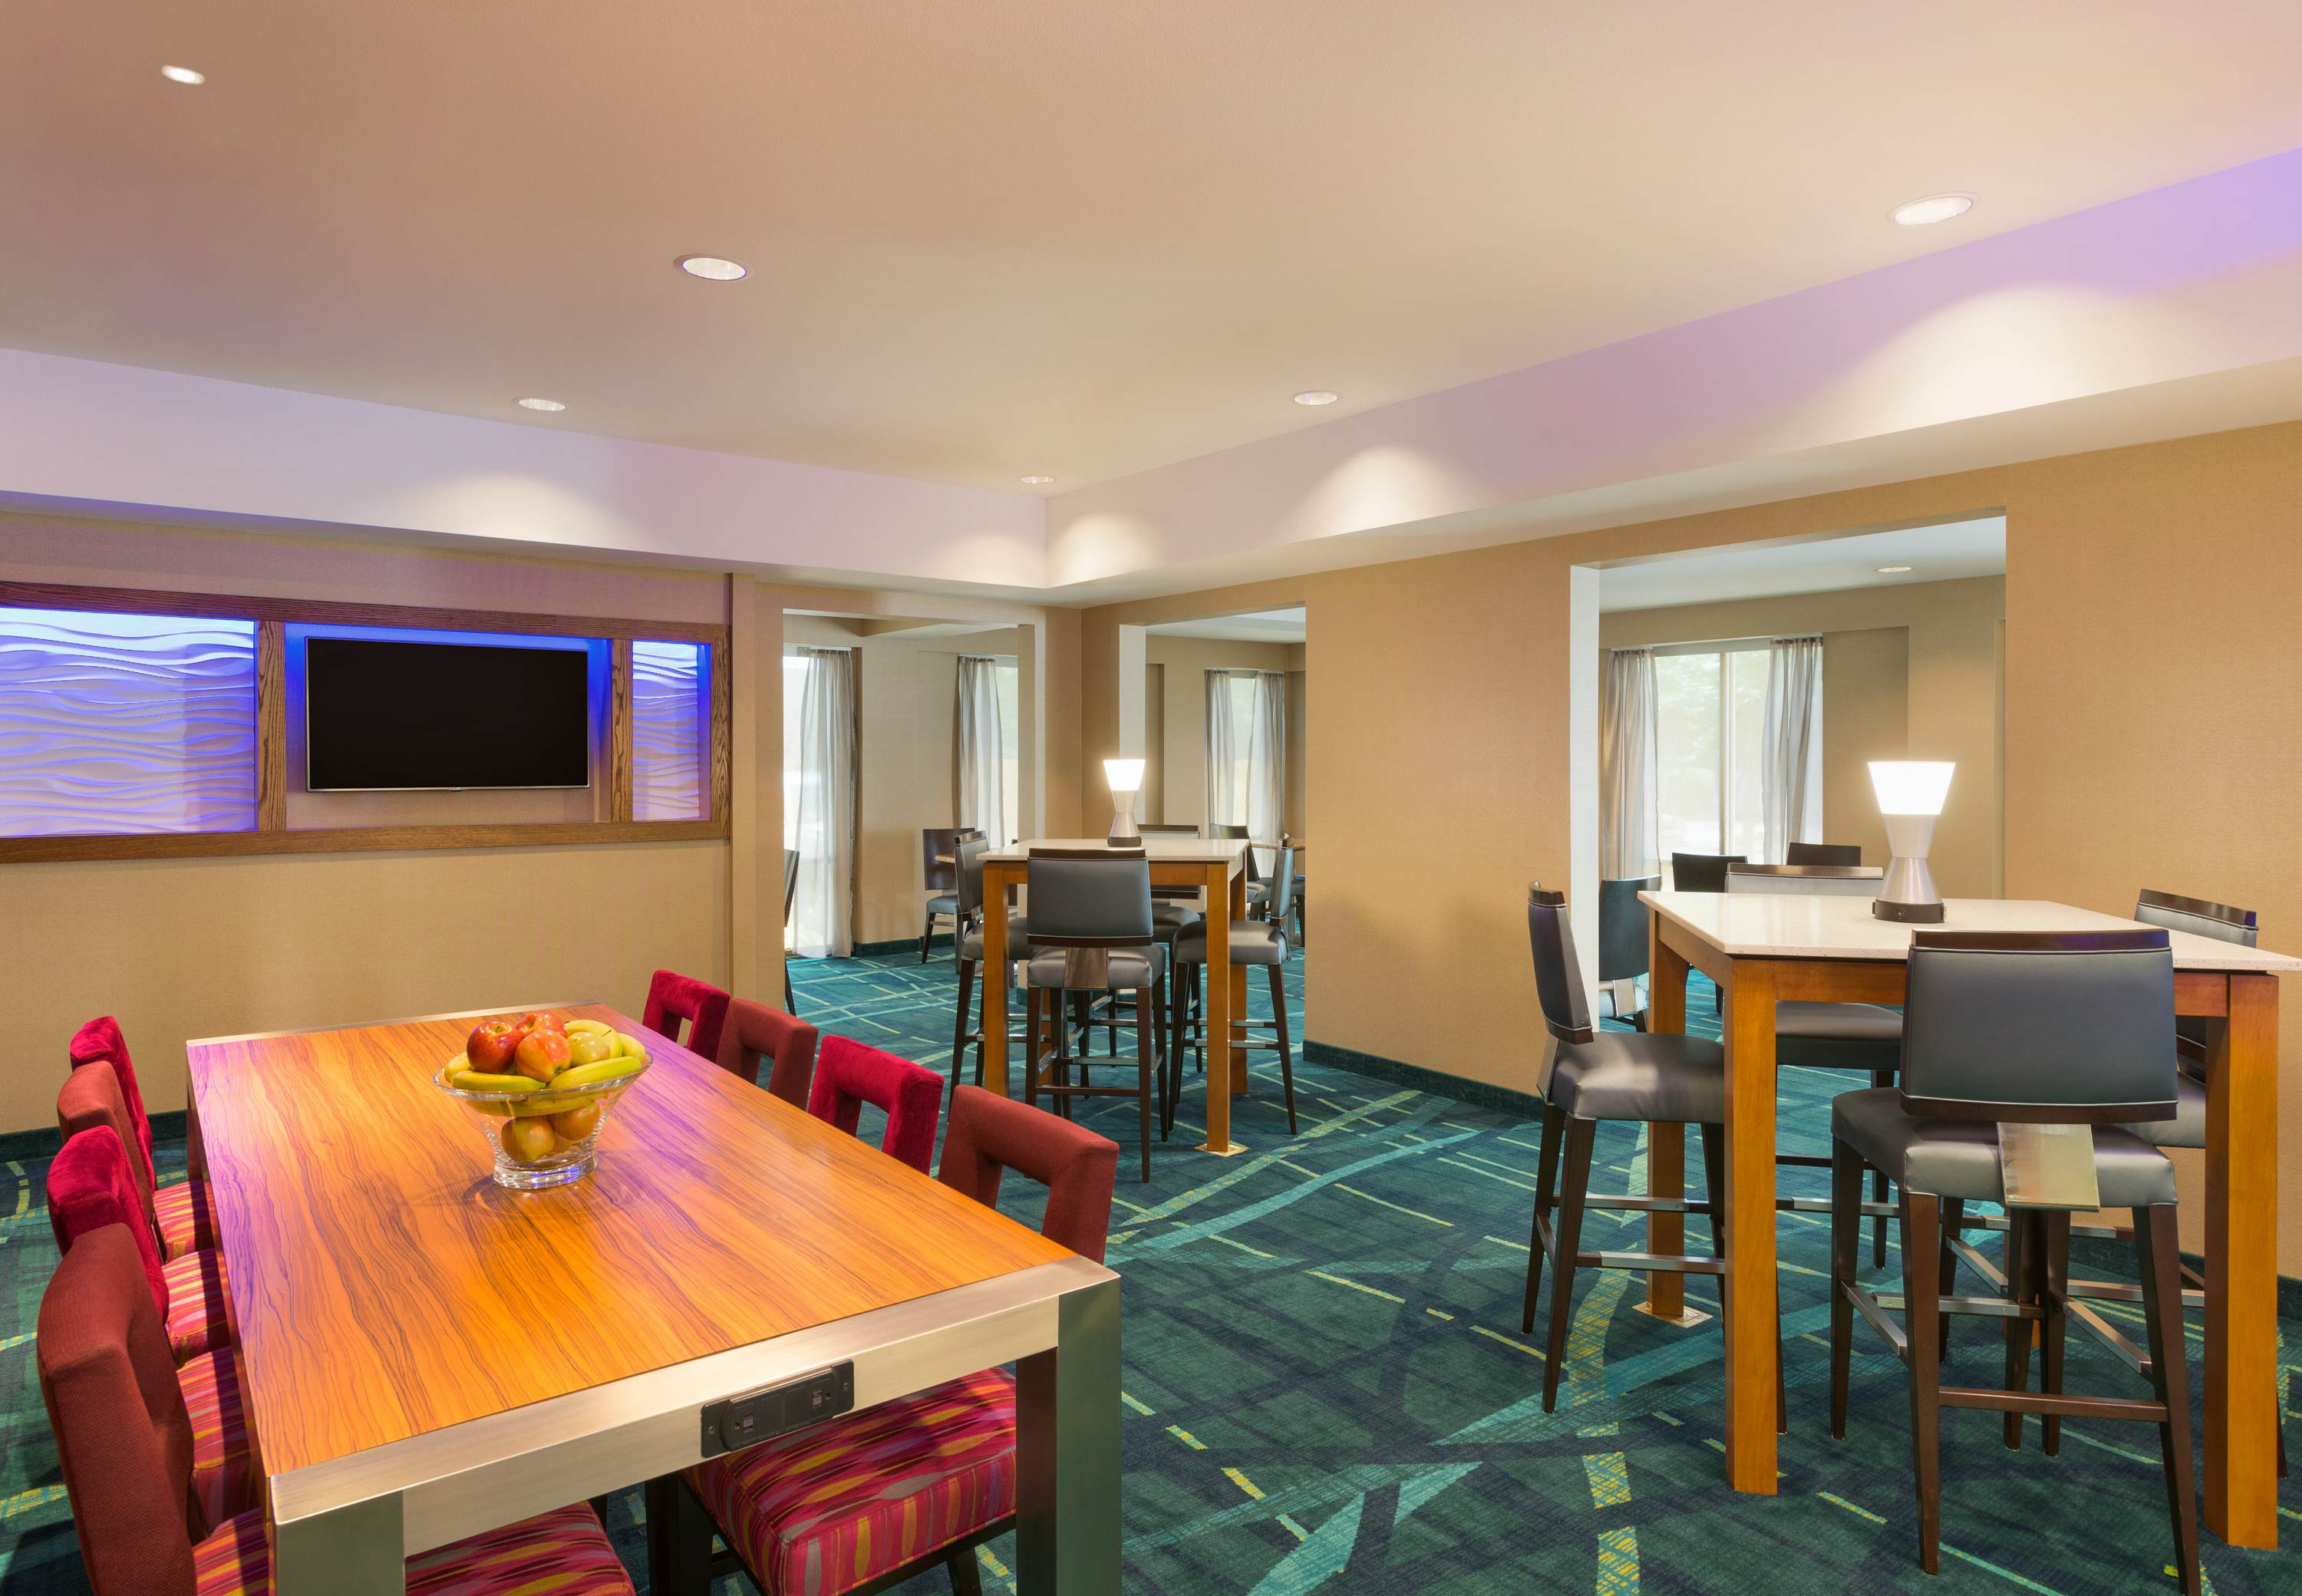 SpringHill Suites by Marriott Little Rock West image 6